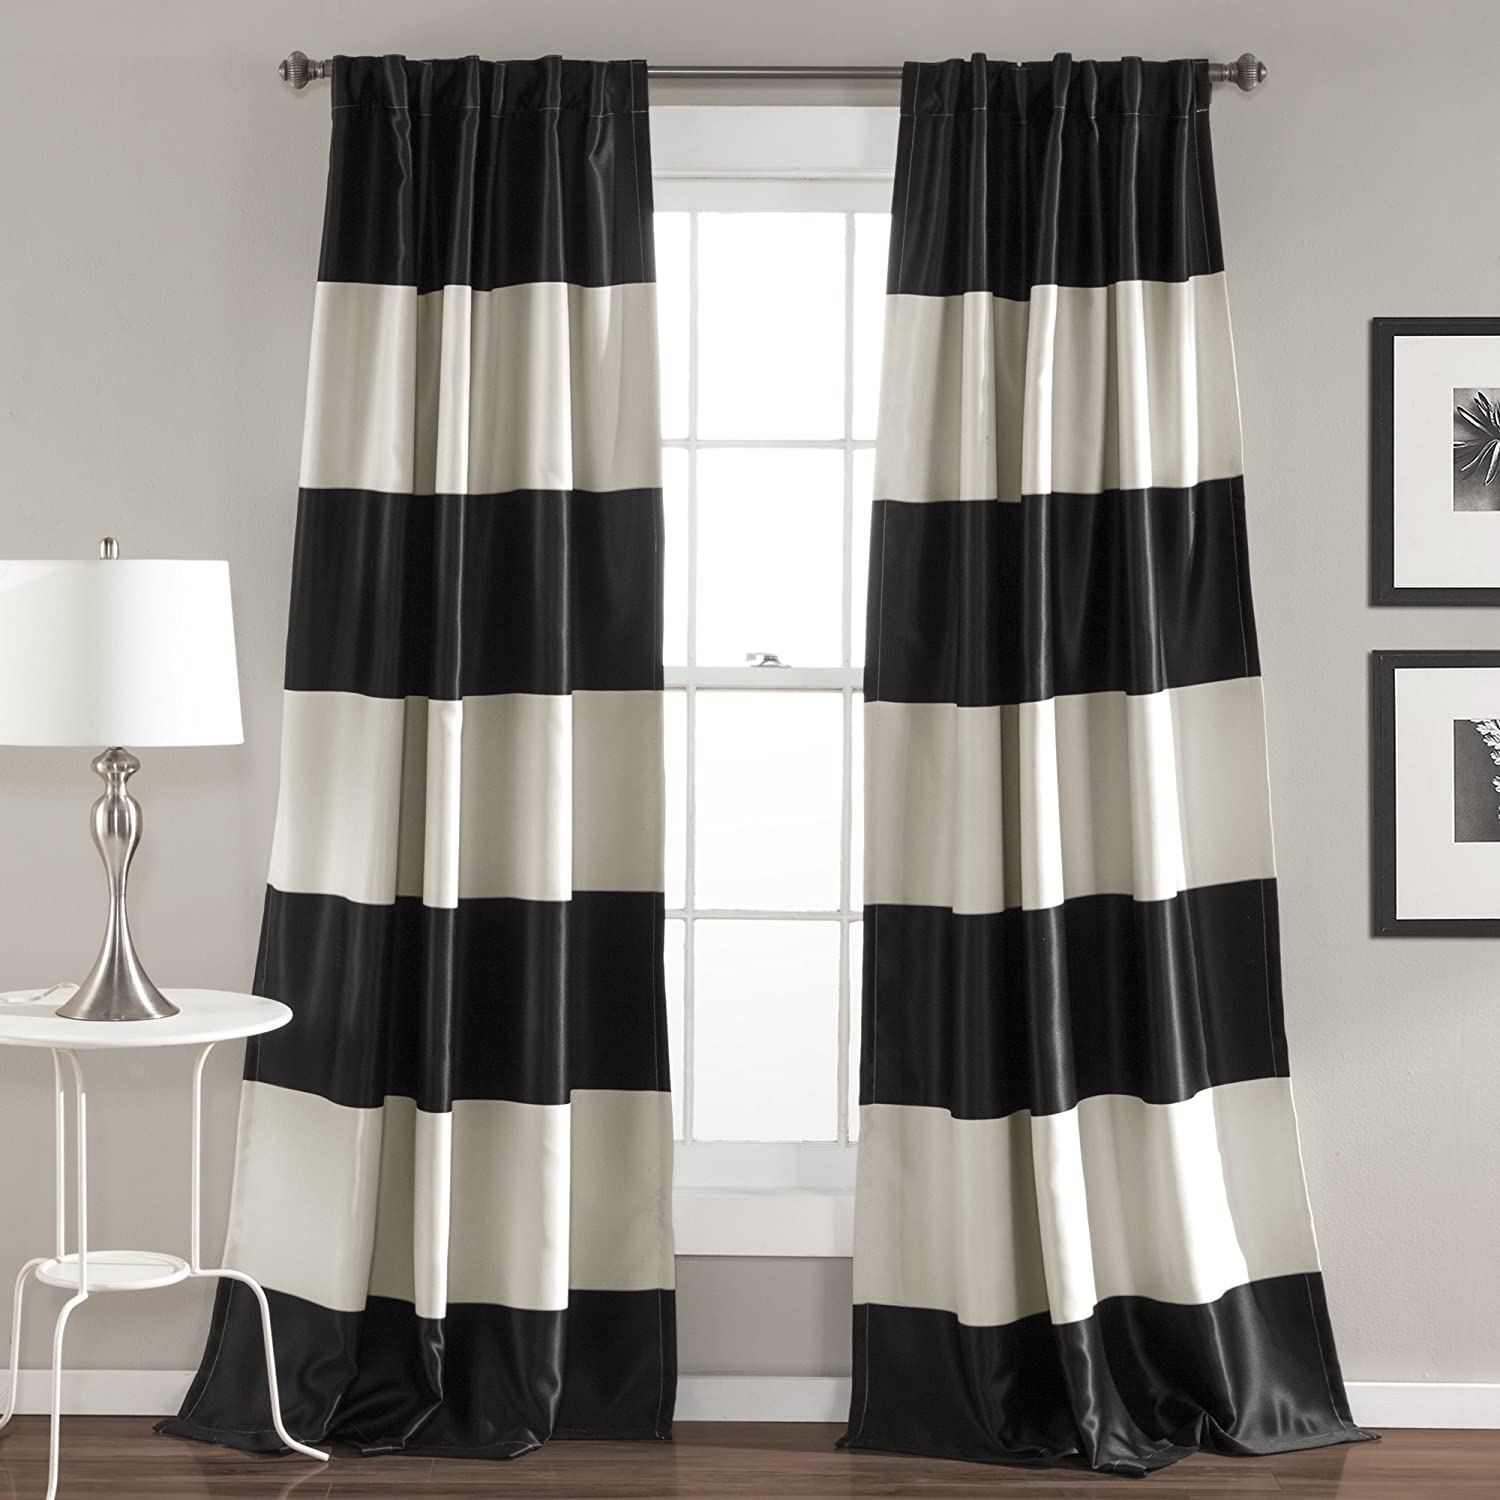 Black And White Curtains - Amazon com lush decor montego stripe window curtain panel set 84 x 52 black home kitchen